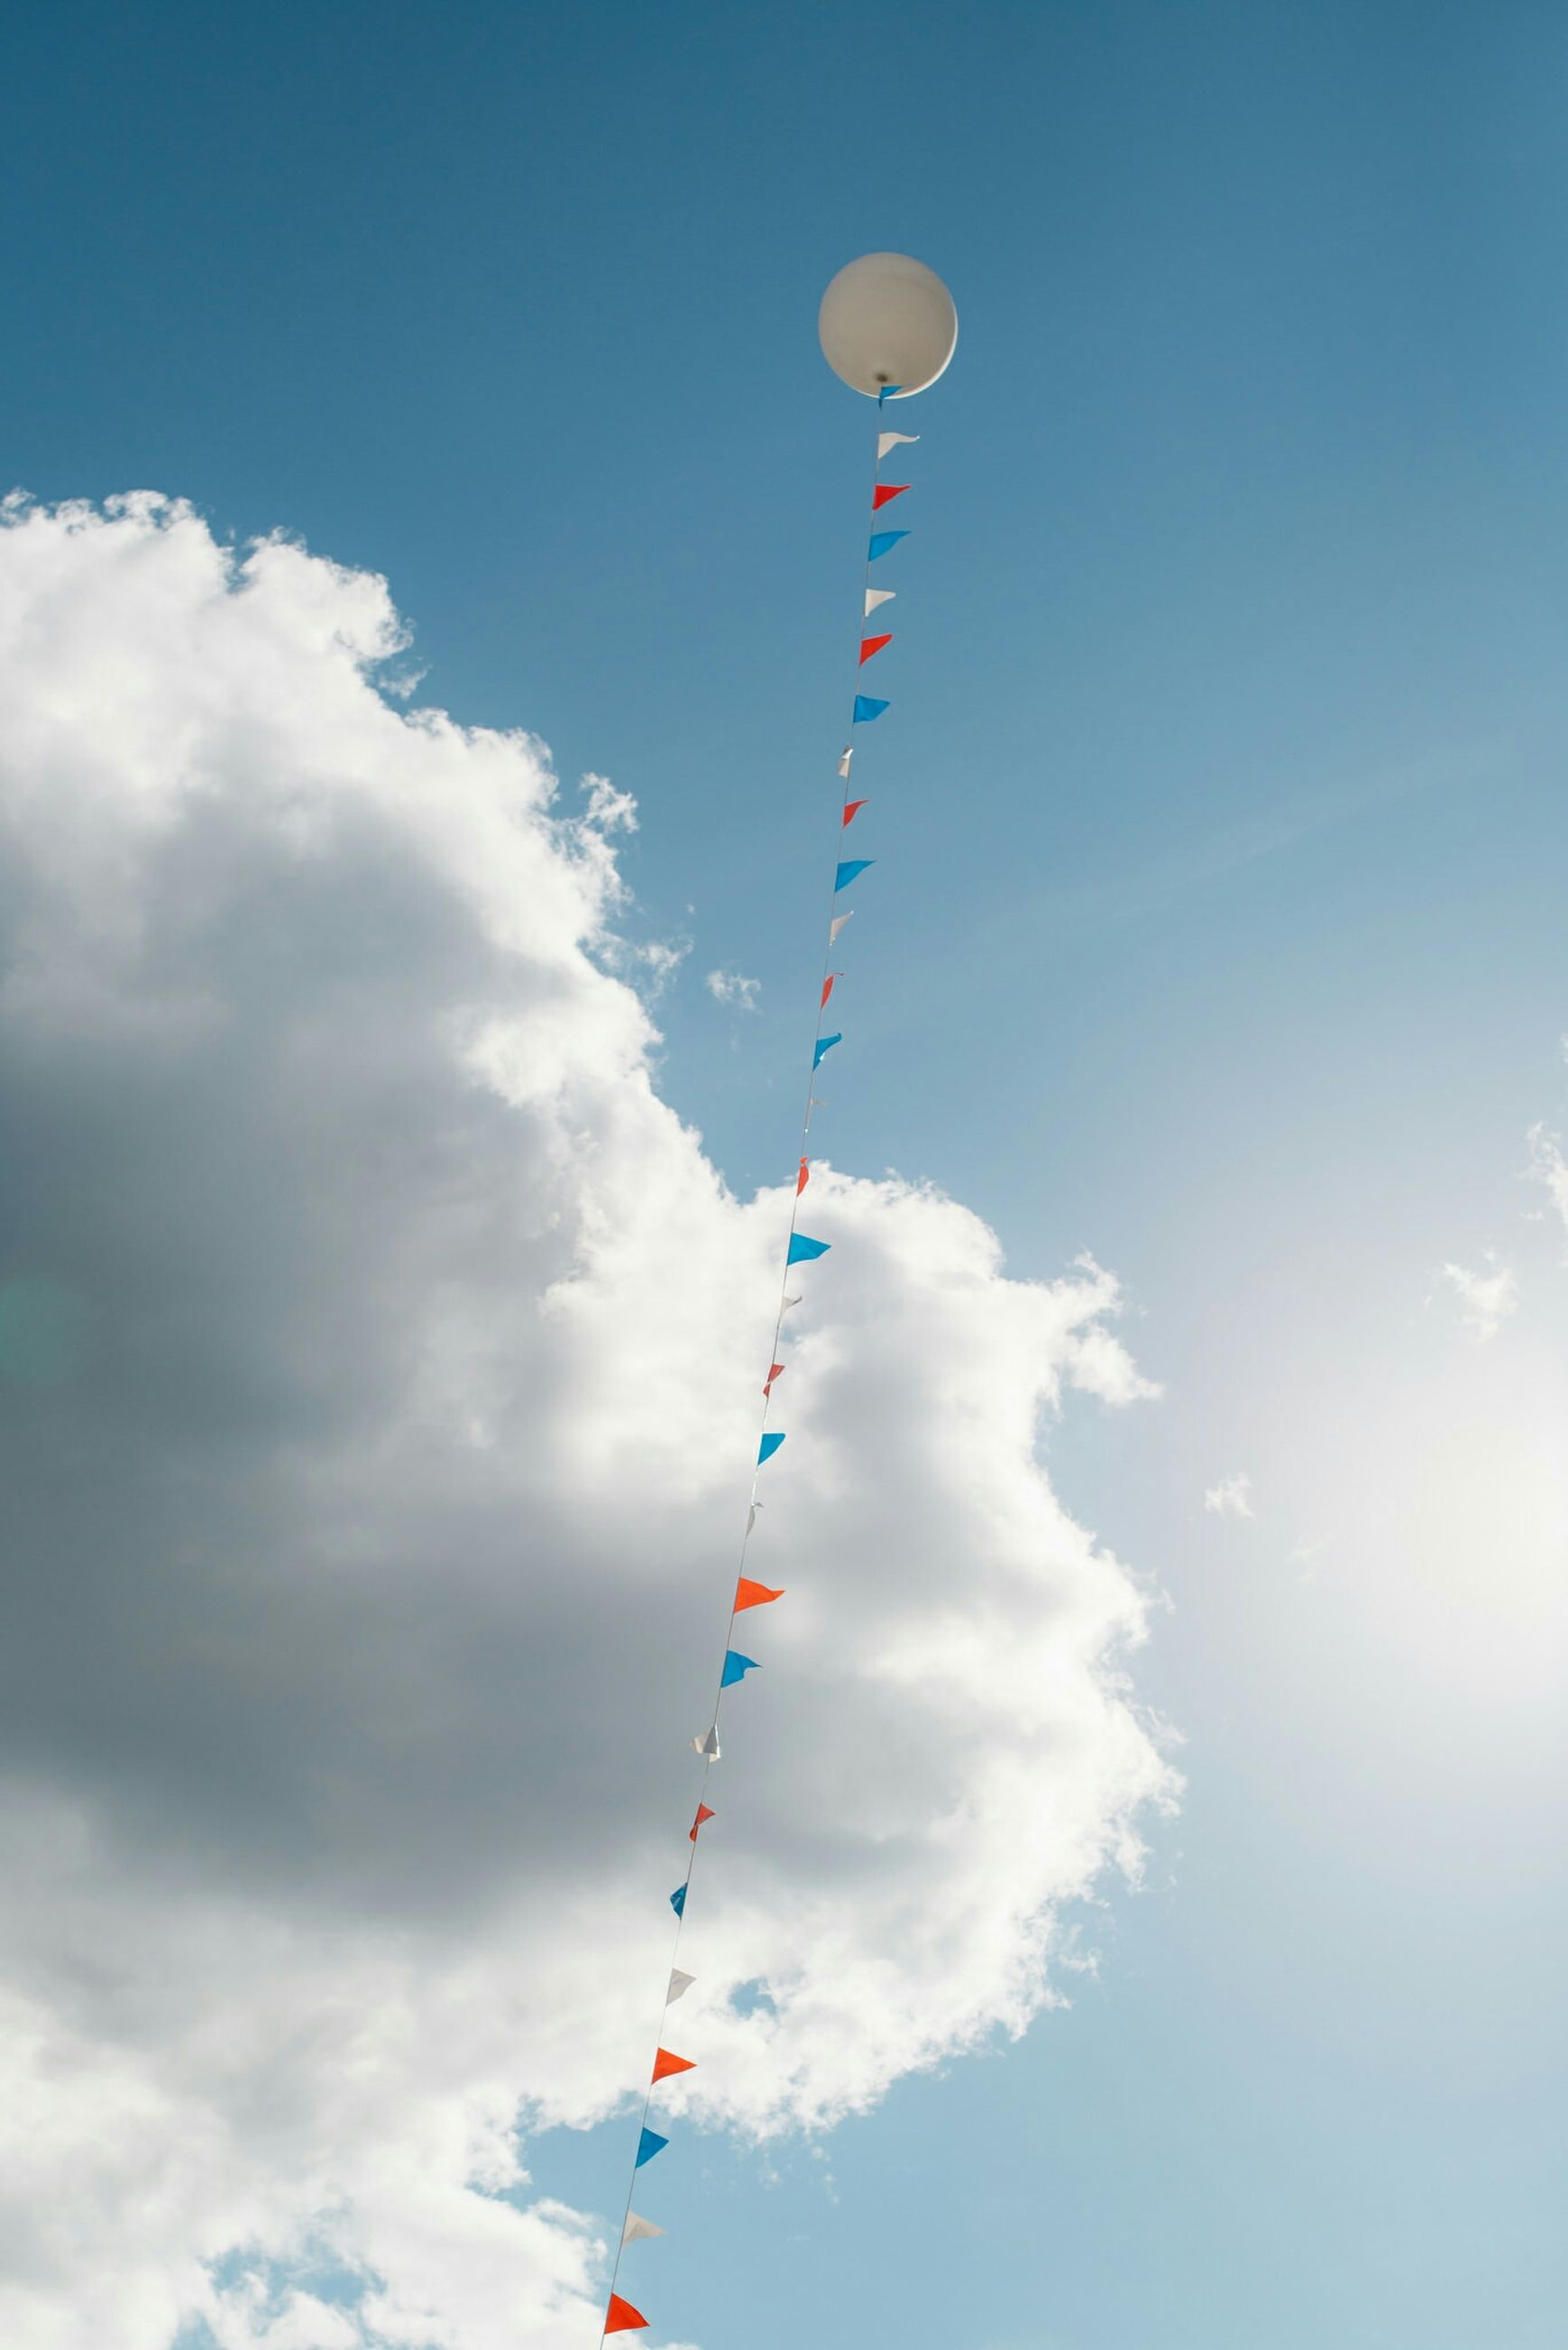 low angle view, sky, blue, cloud - sky, flag, street light, cloud, mid-air, identity, pole, transportation, multi colored, national flag, patriotism, day, outdoors, cloudy, flying, balloon, no people